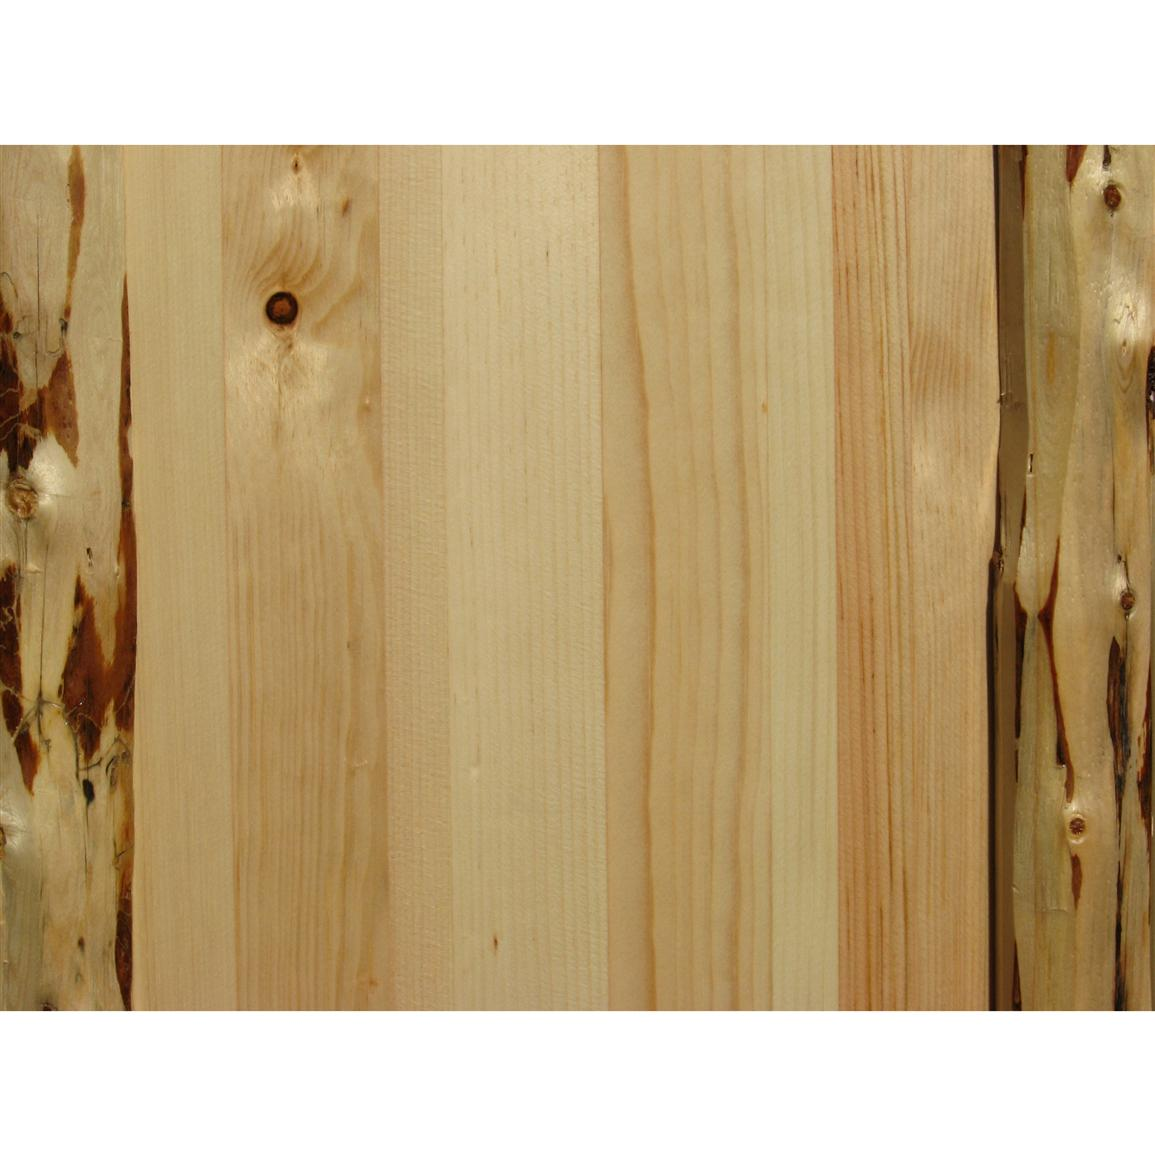 Draw knives are used to skip-peel the bark from the logs, creating a natural texture and color contrast